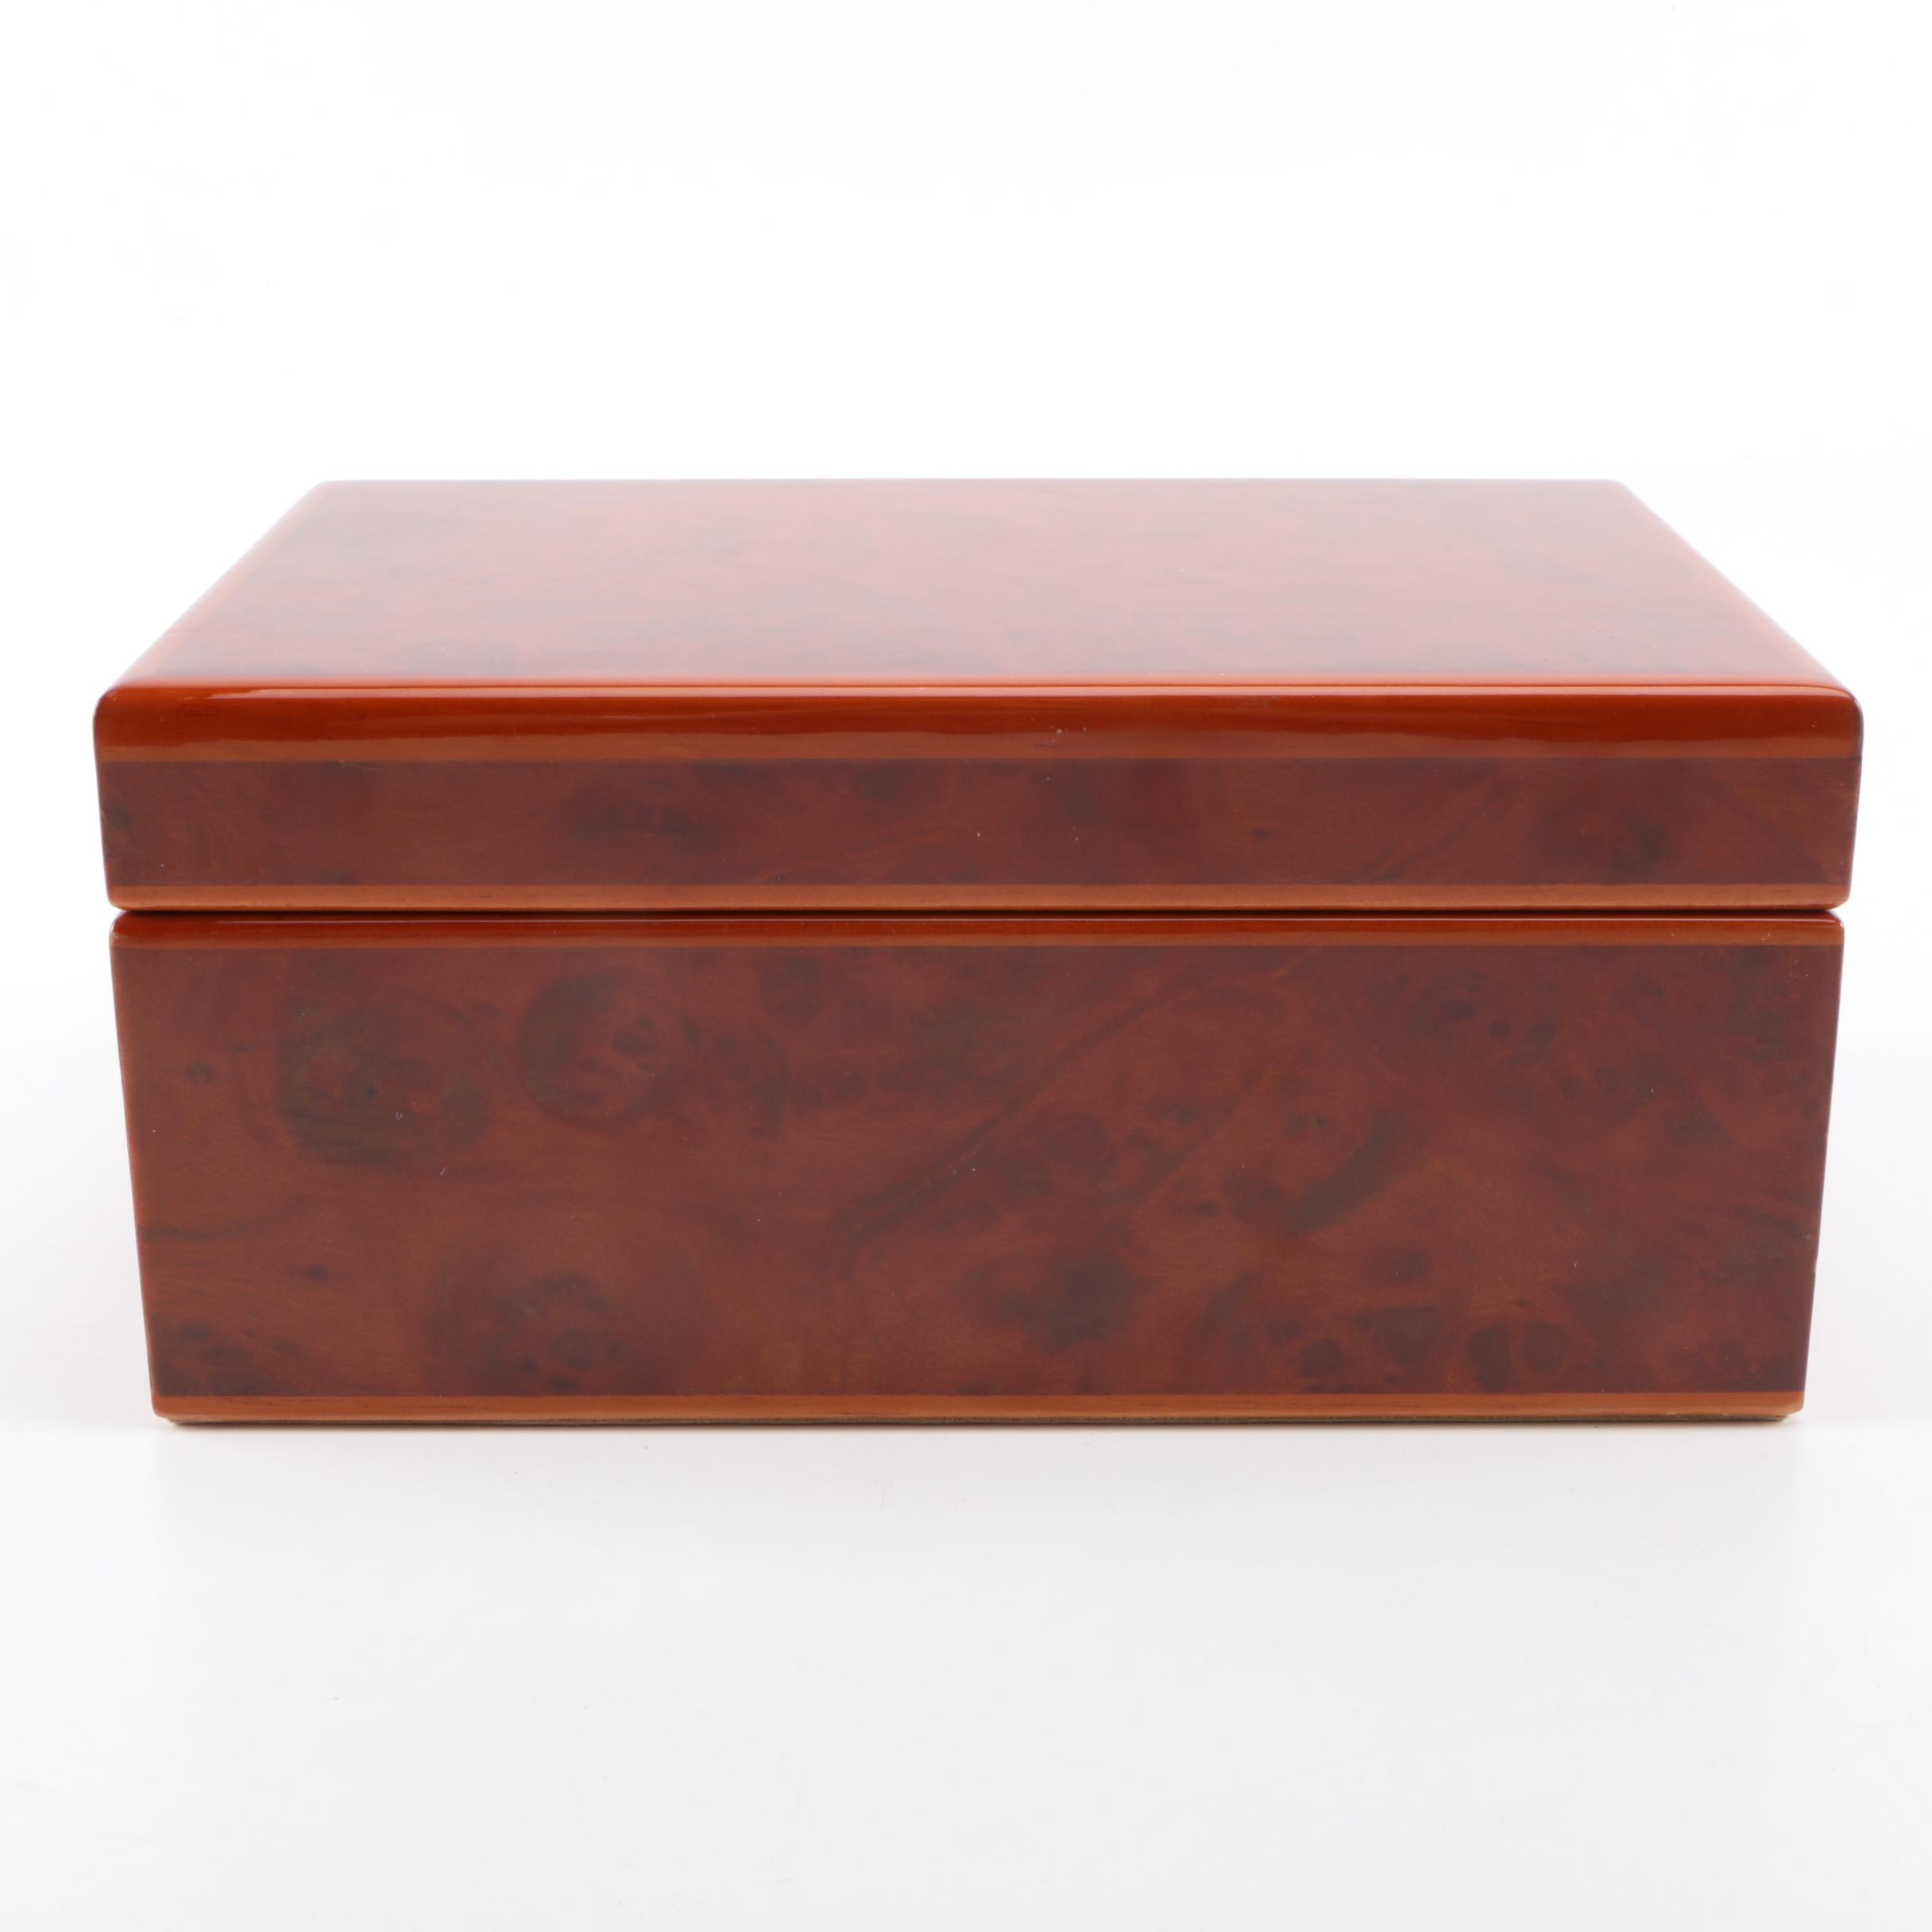 Lacquered Wood Jewelry Box